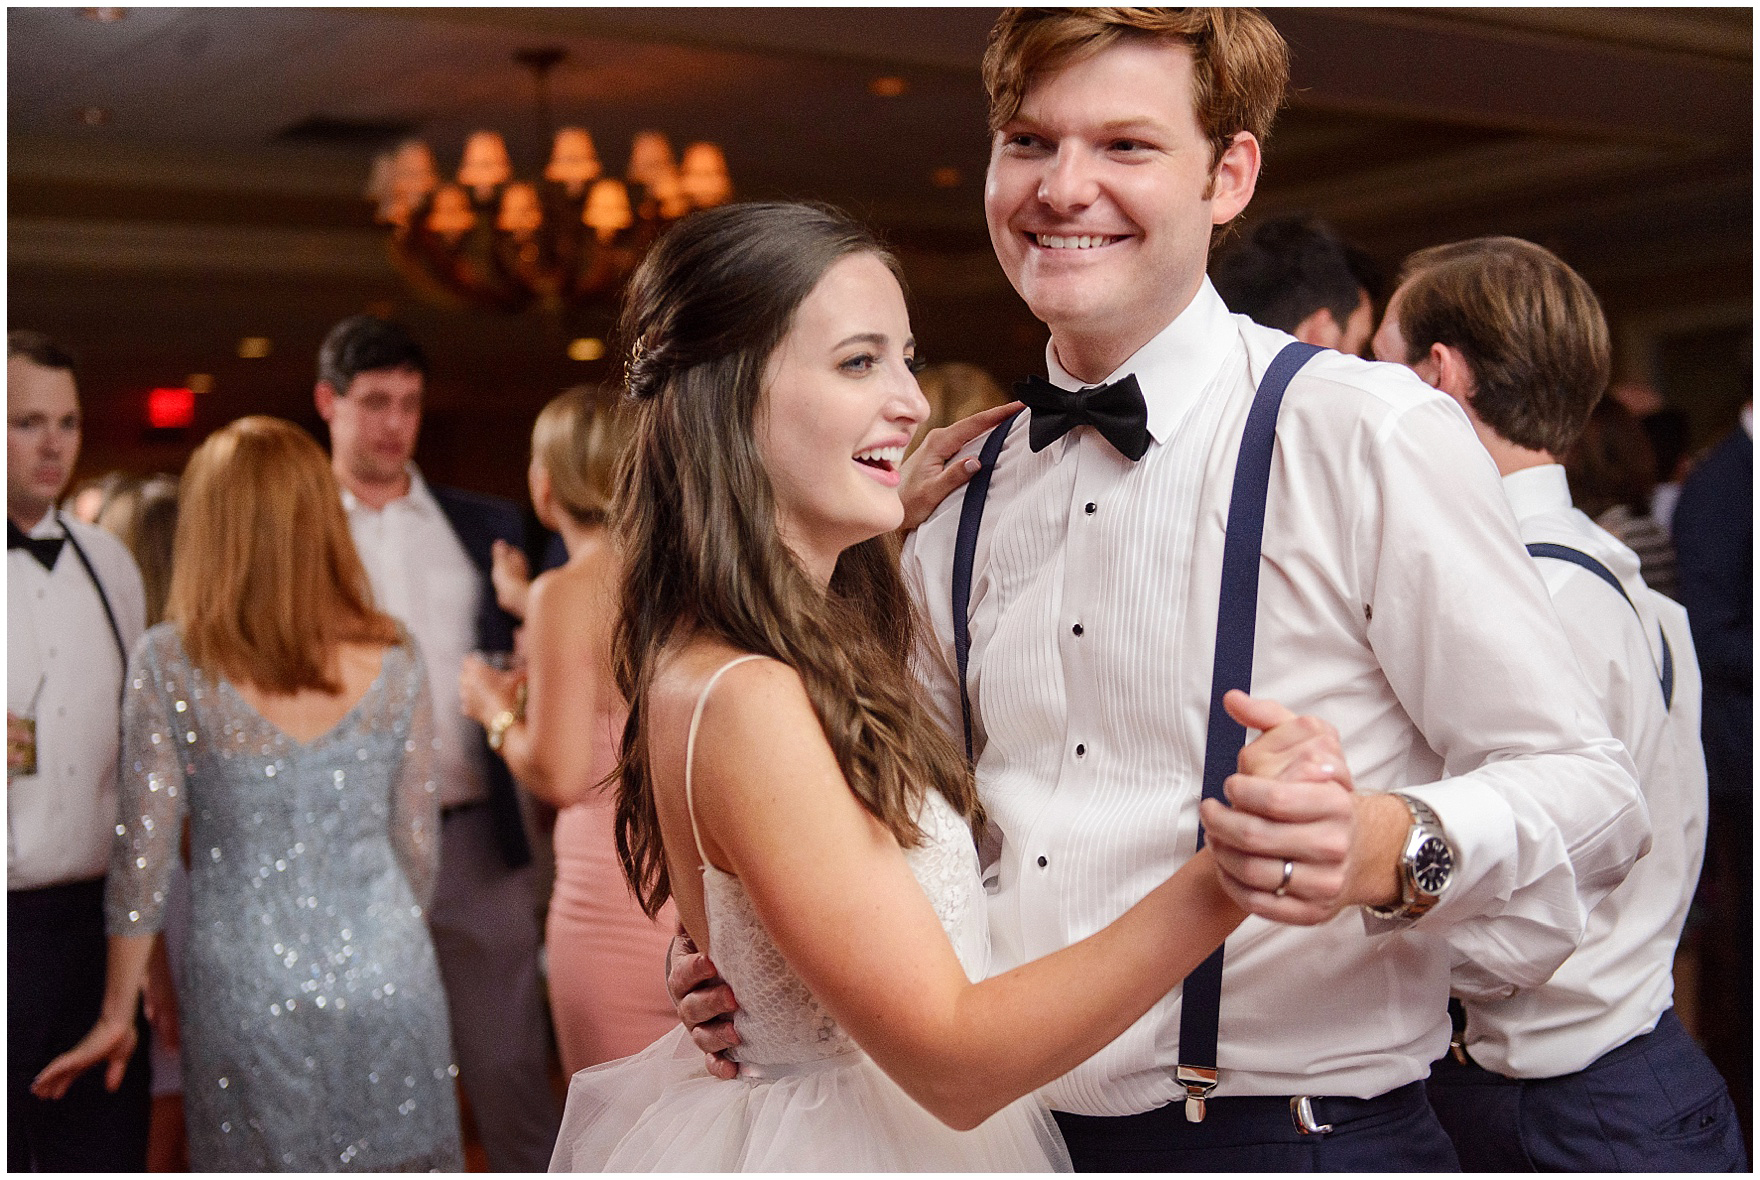 The bride and groom dance at a Butterfield Country Club wedding.